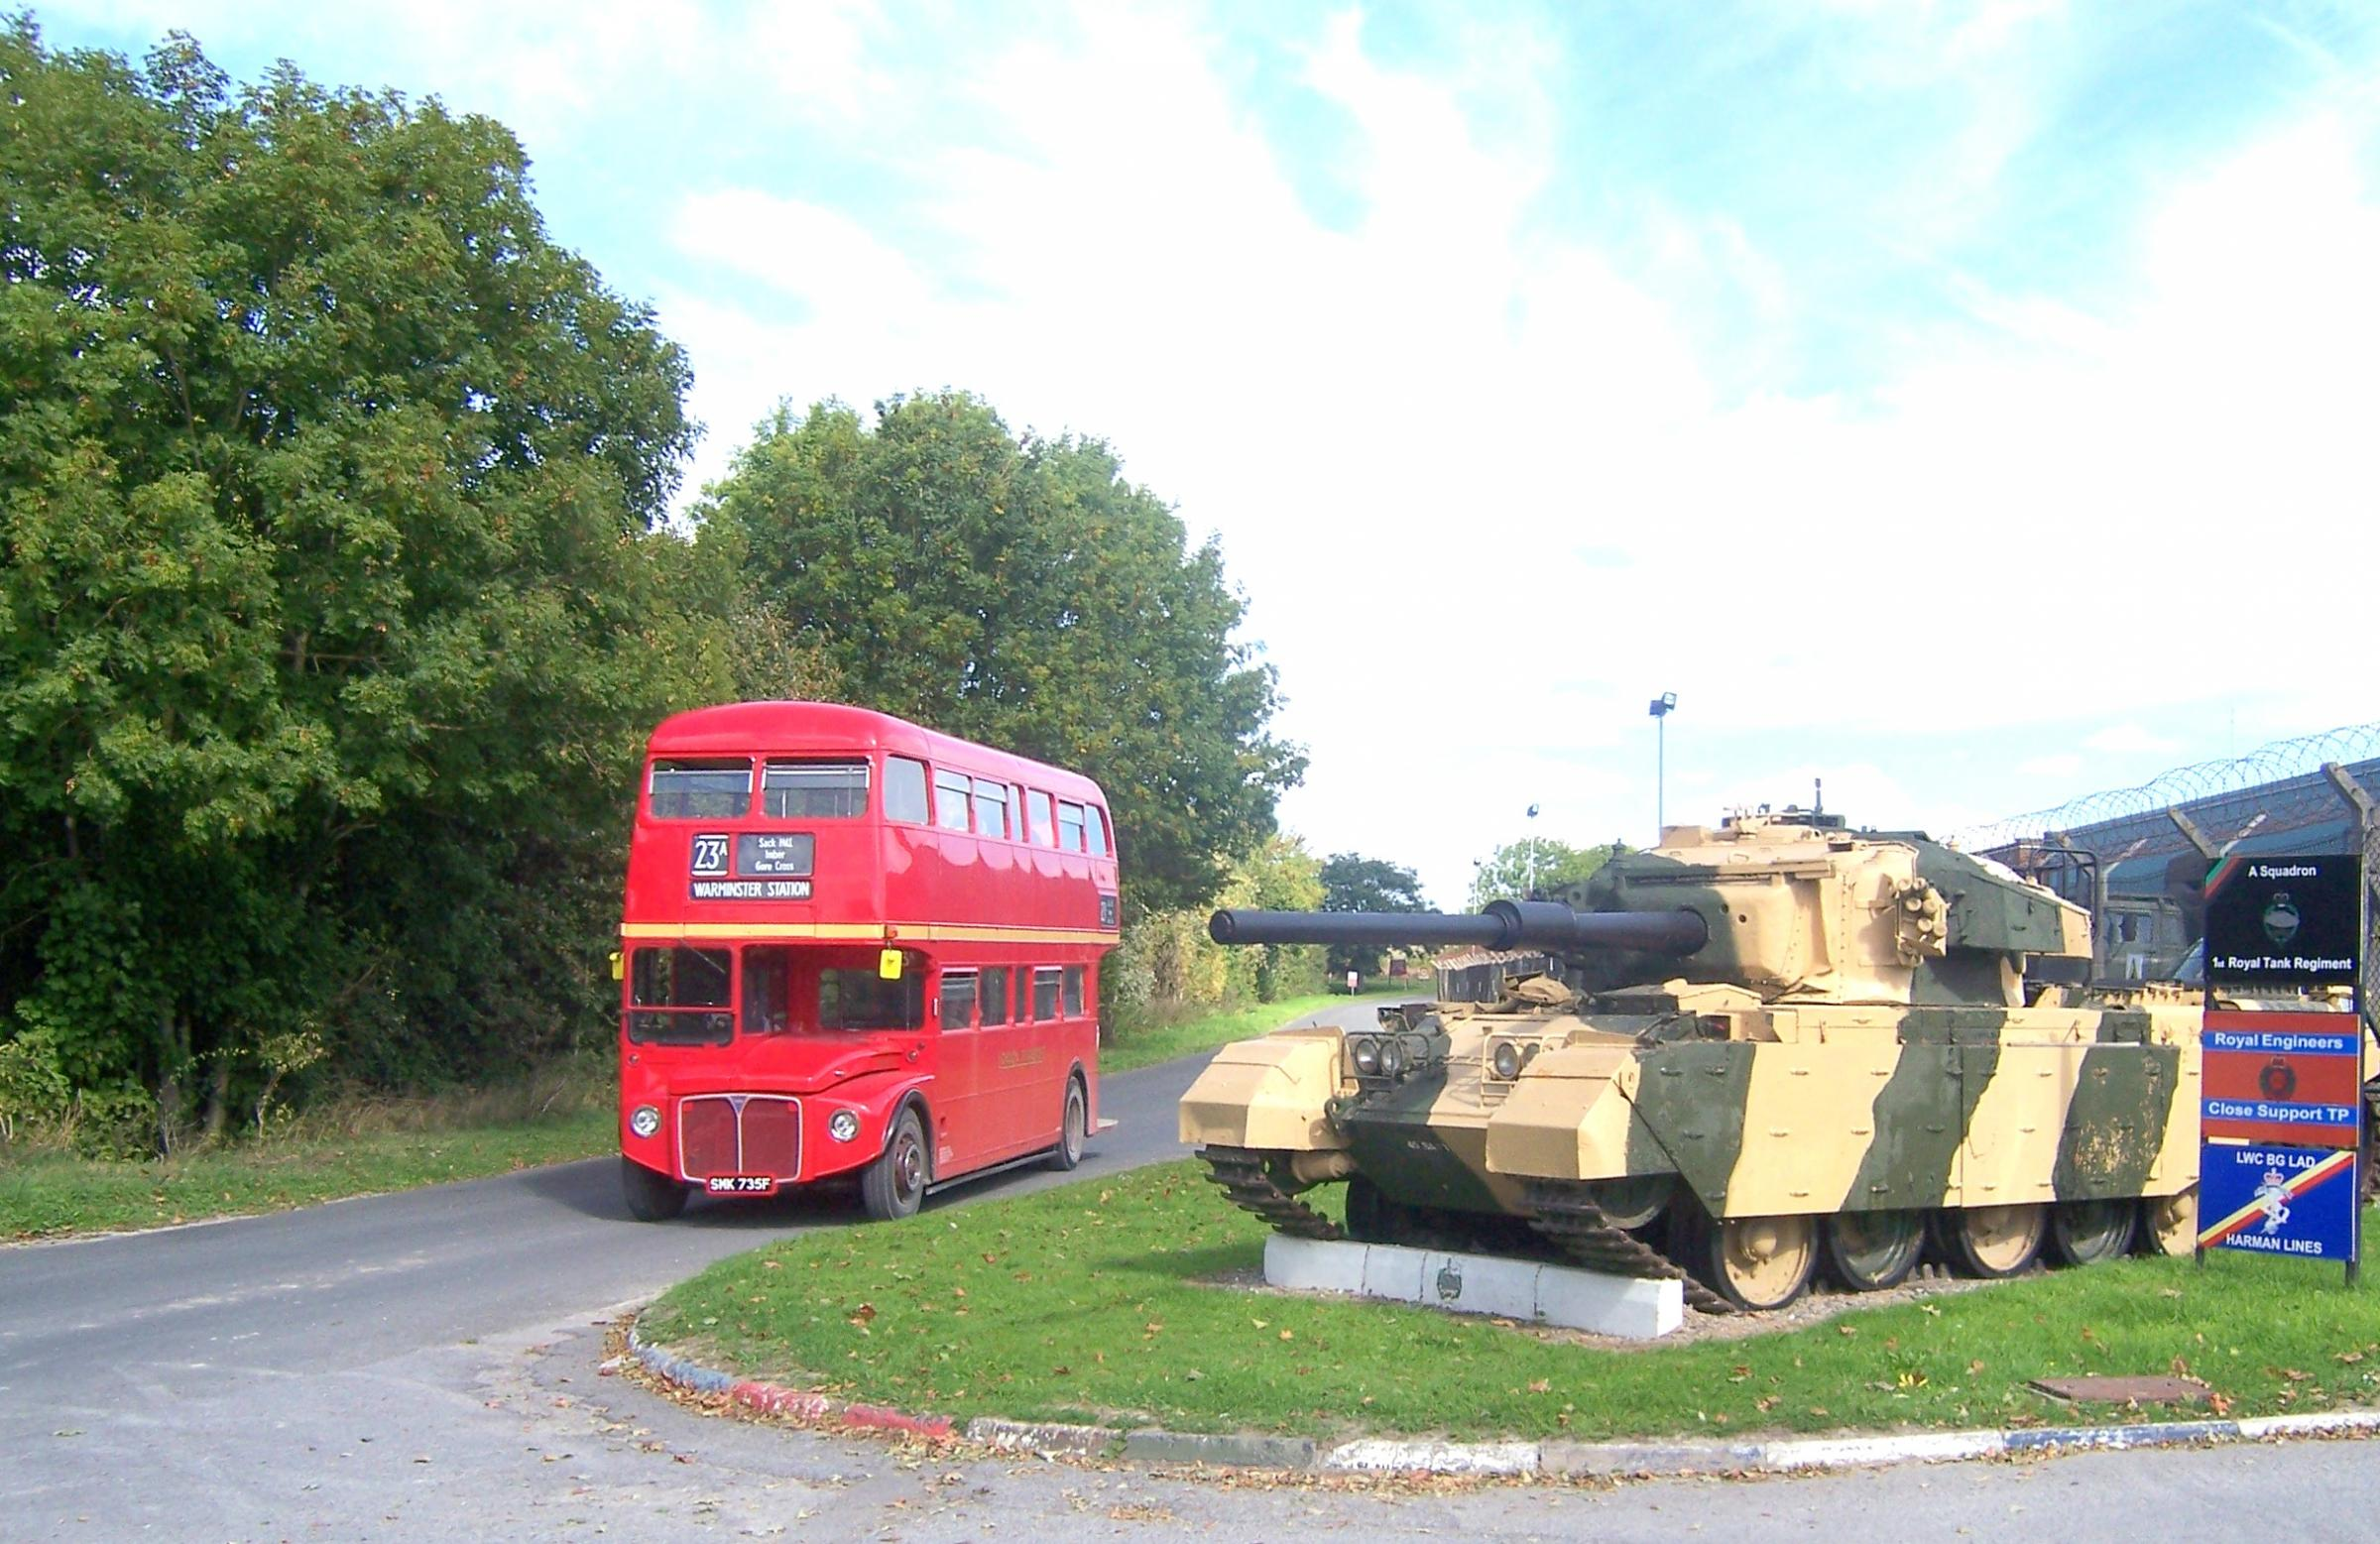 Imberbus: providing a classic bus service to the lost village of Imber